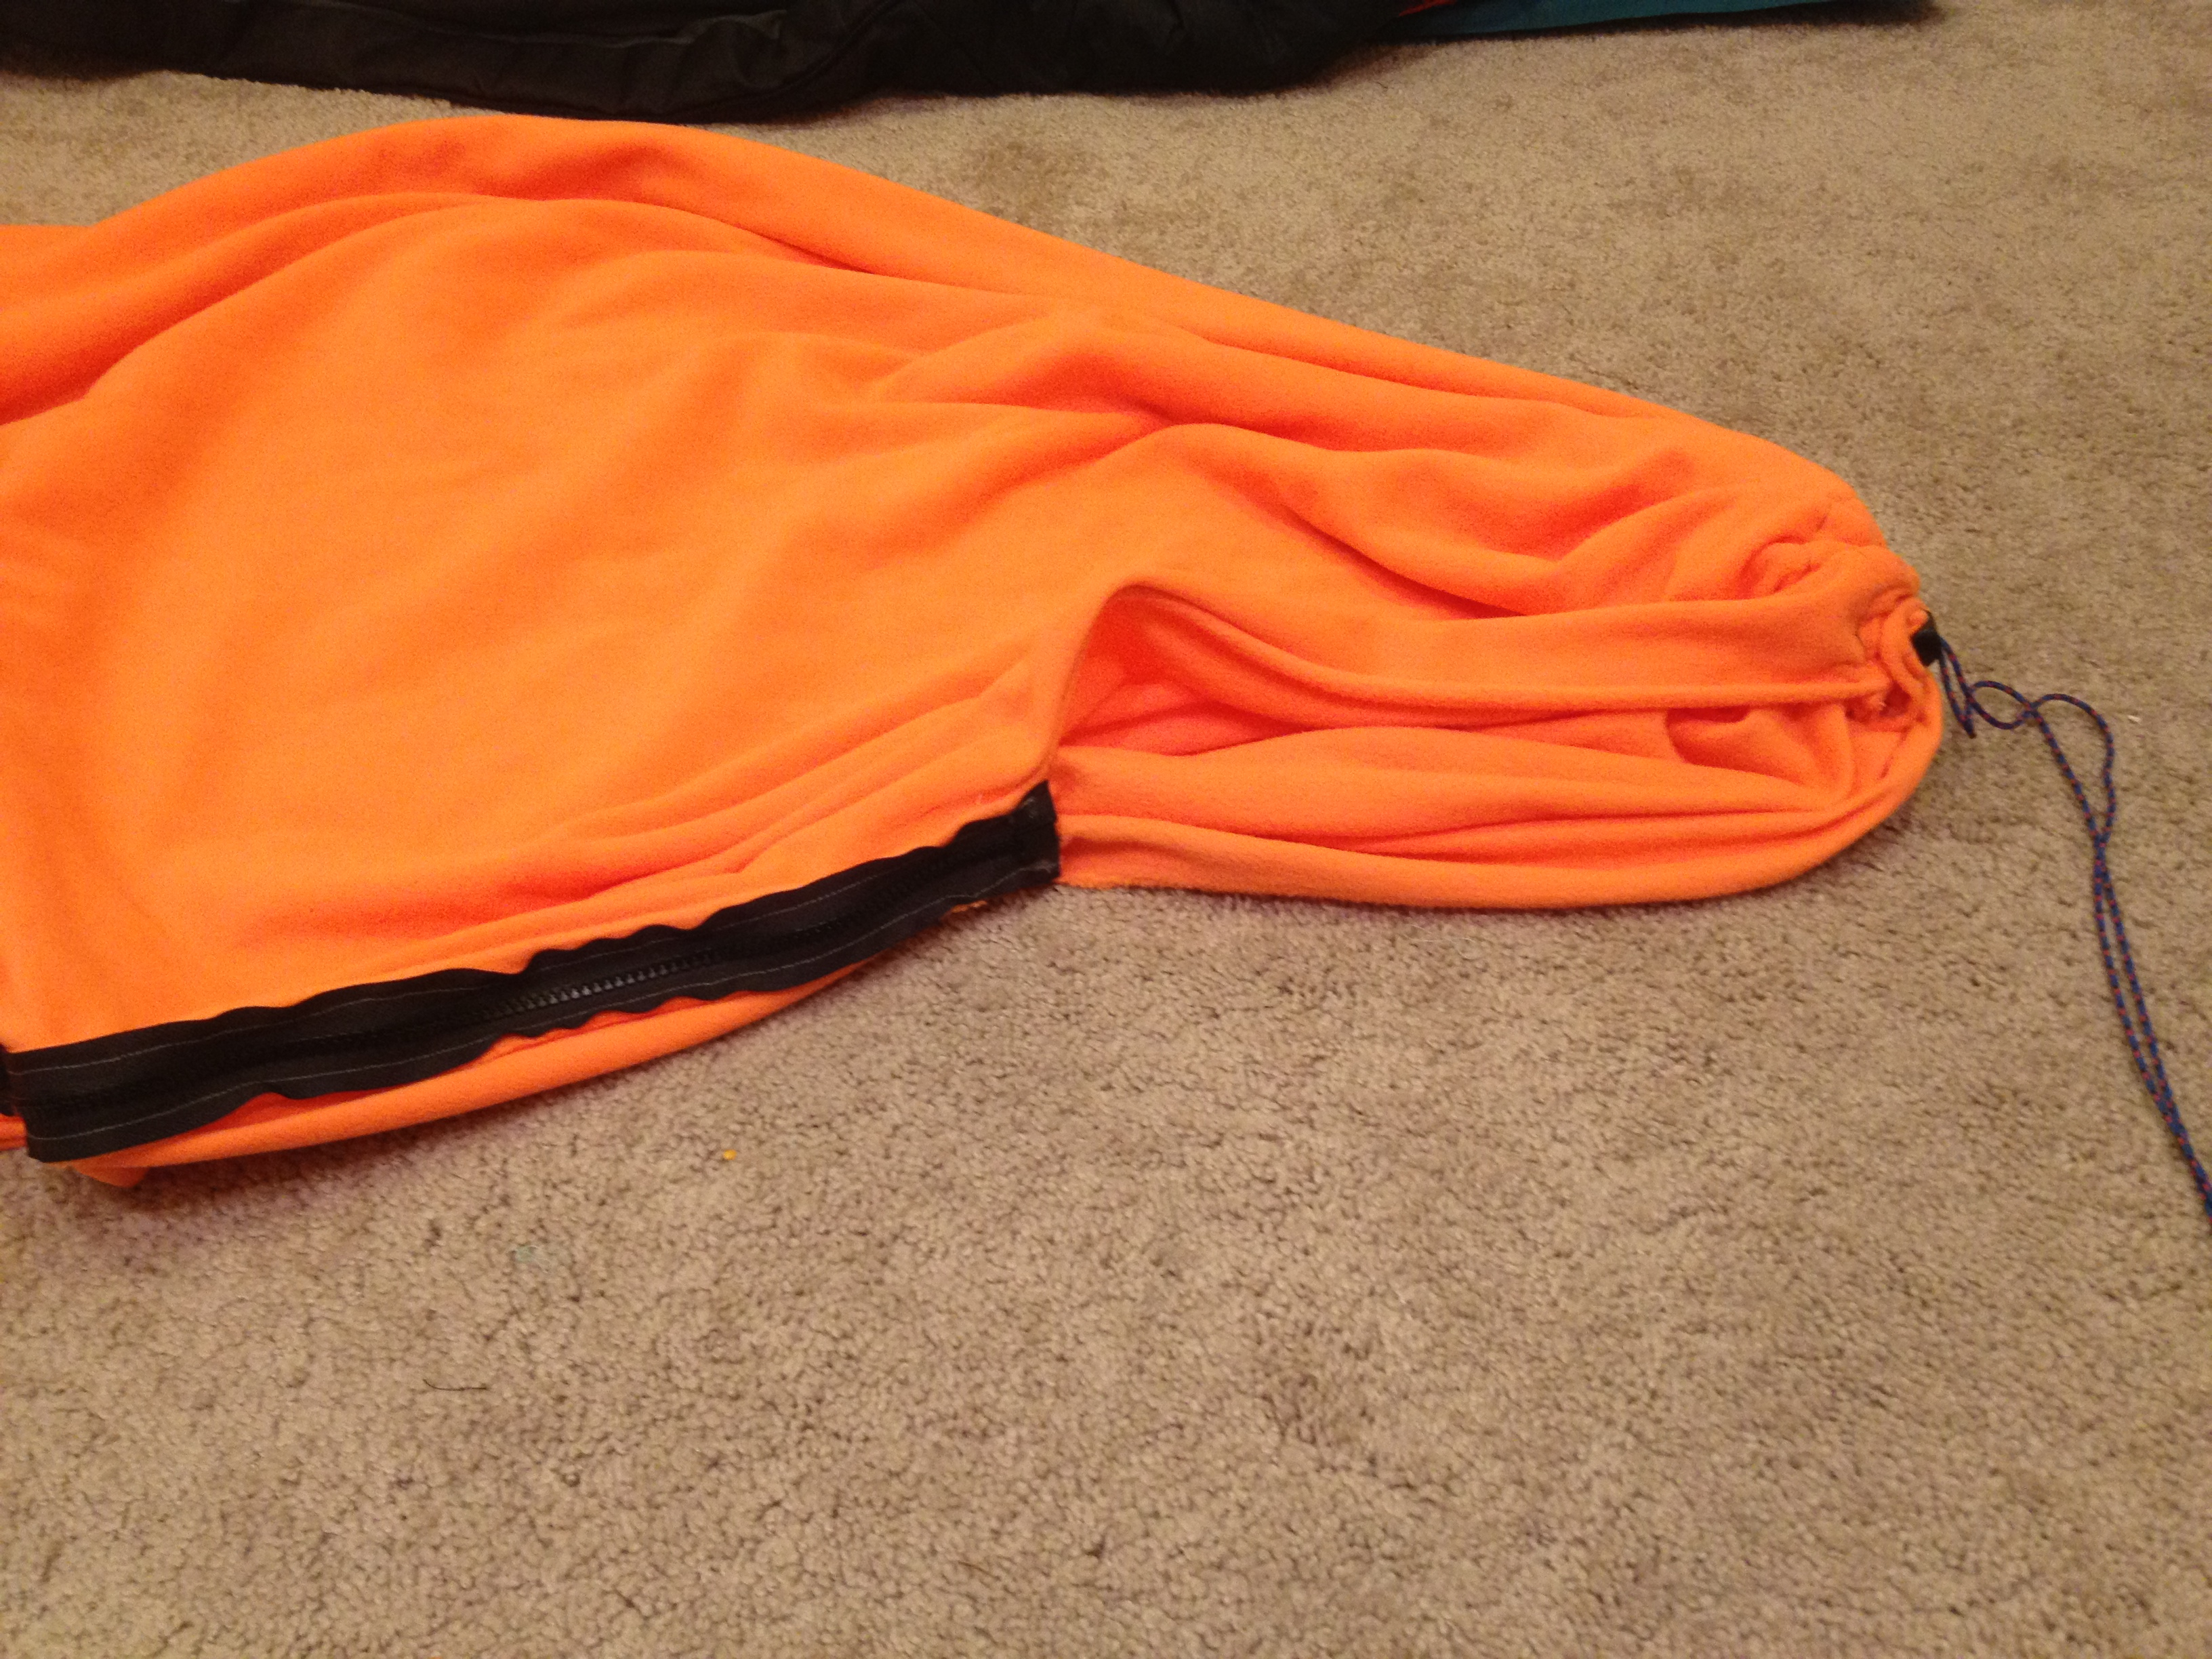 Completed liner, top pulled shut via drawstring